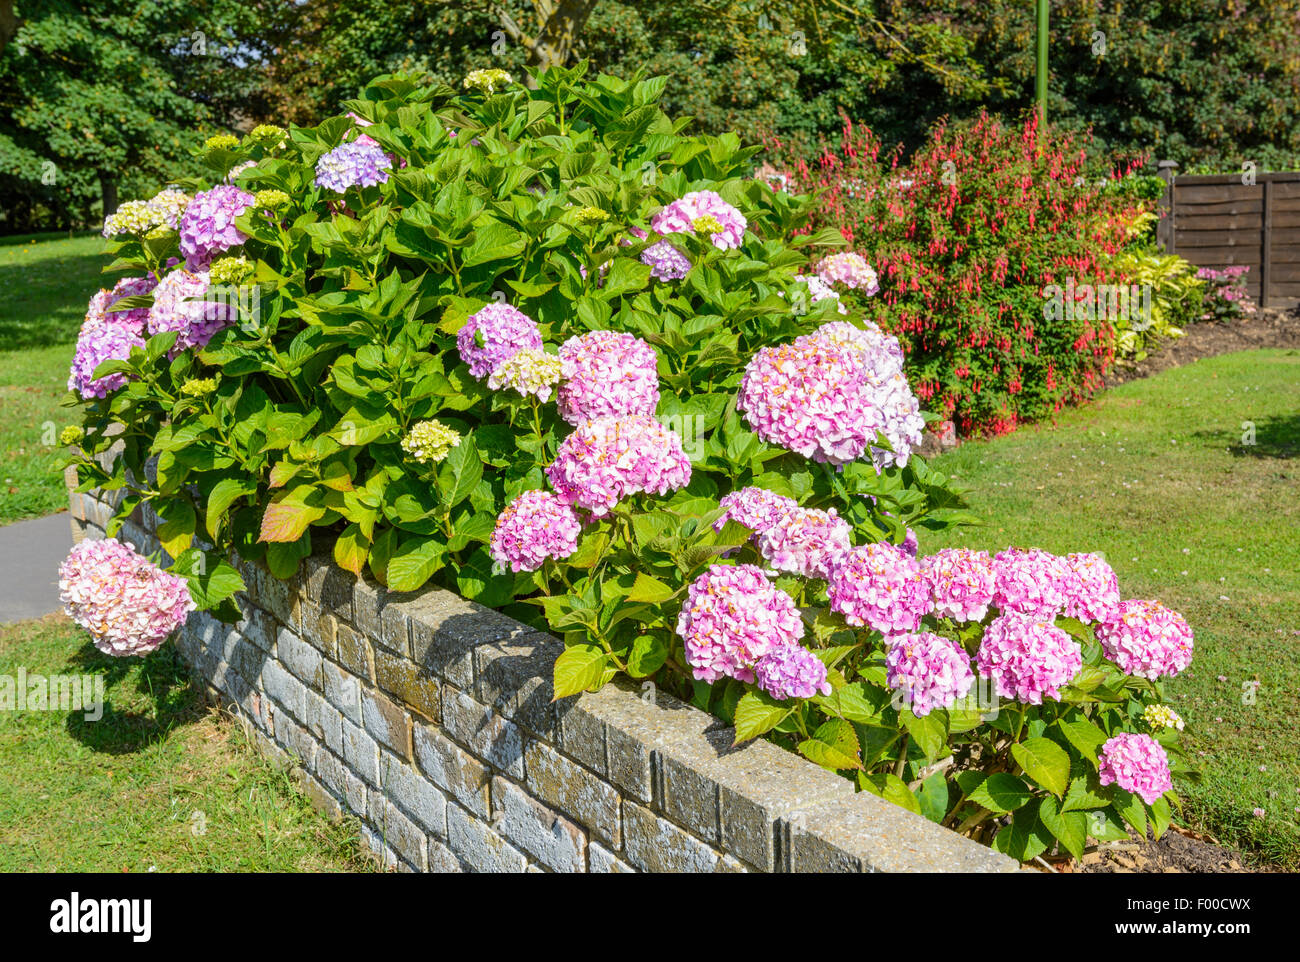 Pink Hydrangea flowers in a garden in summer in West Sussex, England, UK. - Stock Image